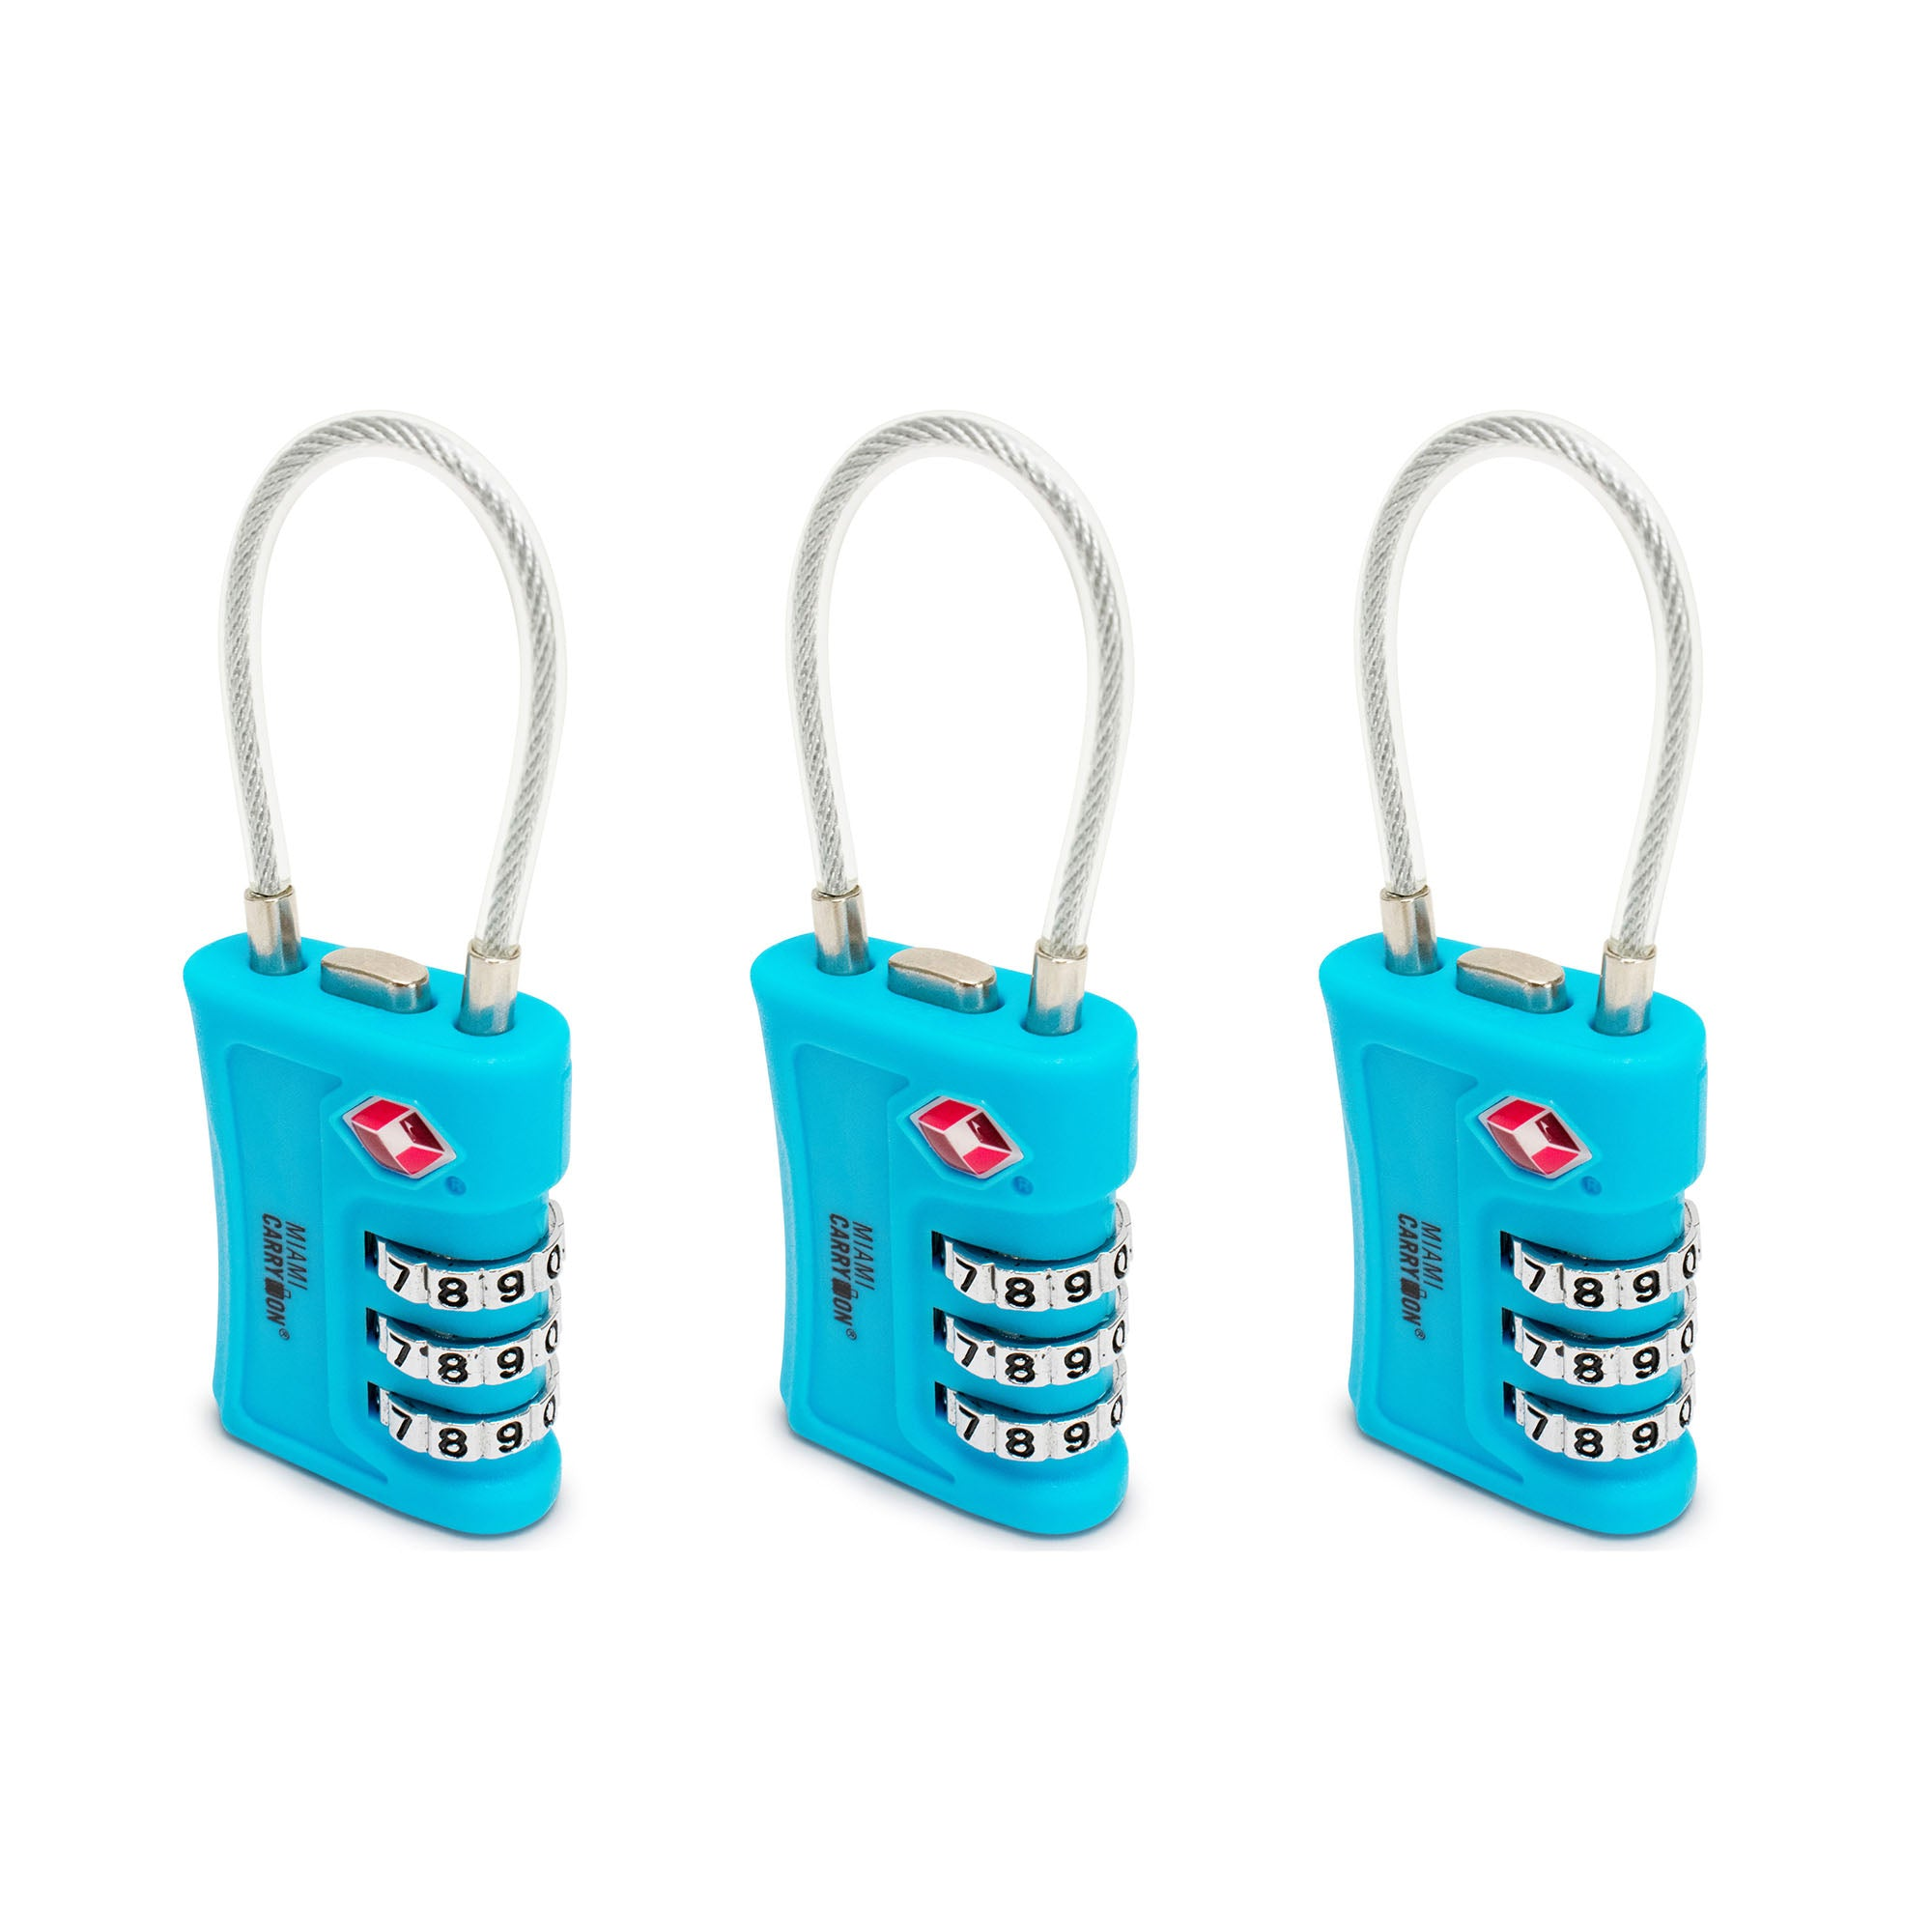 TSA Approved Cable Combination Padlock [VALUE SET] - Light Blue / 3 Pack - Travellty